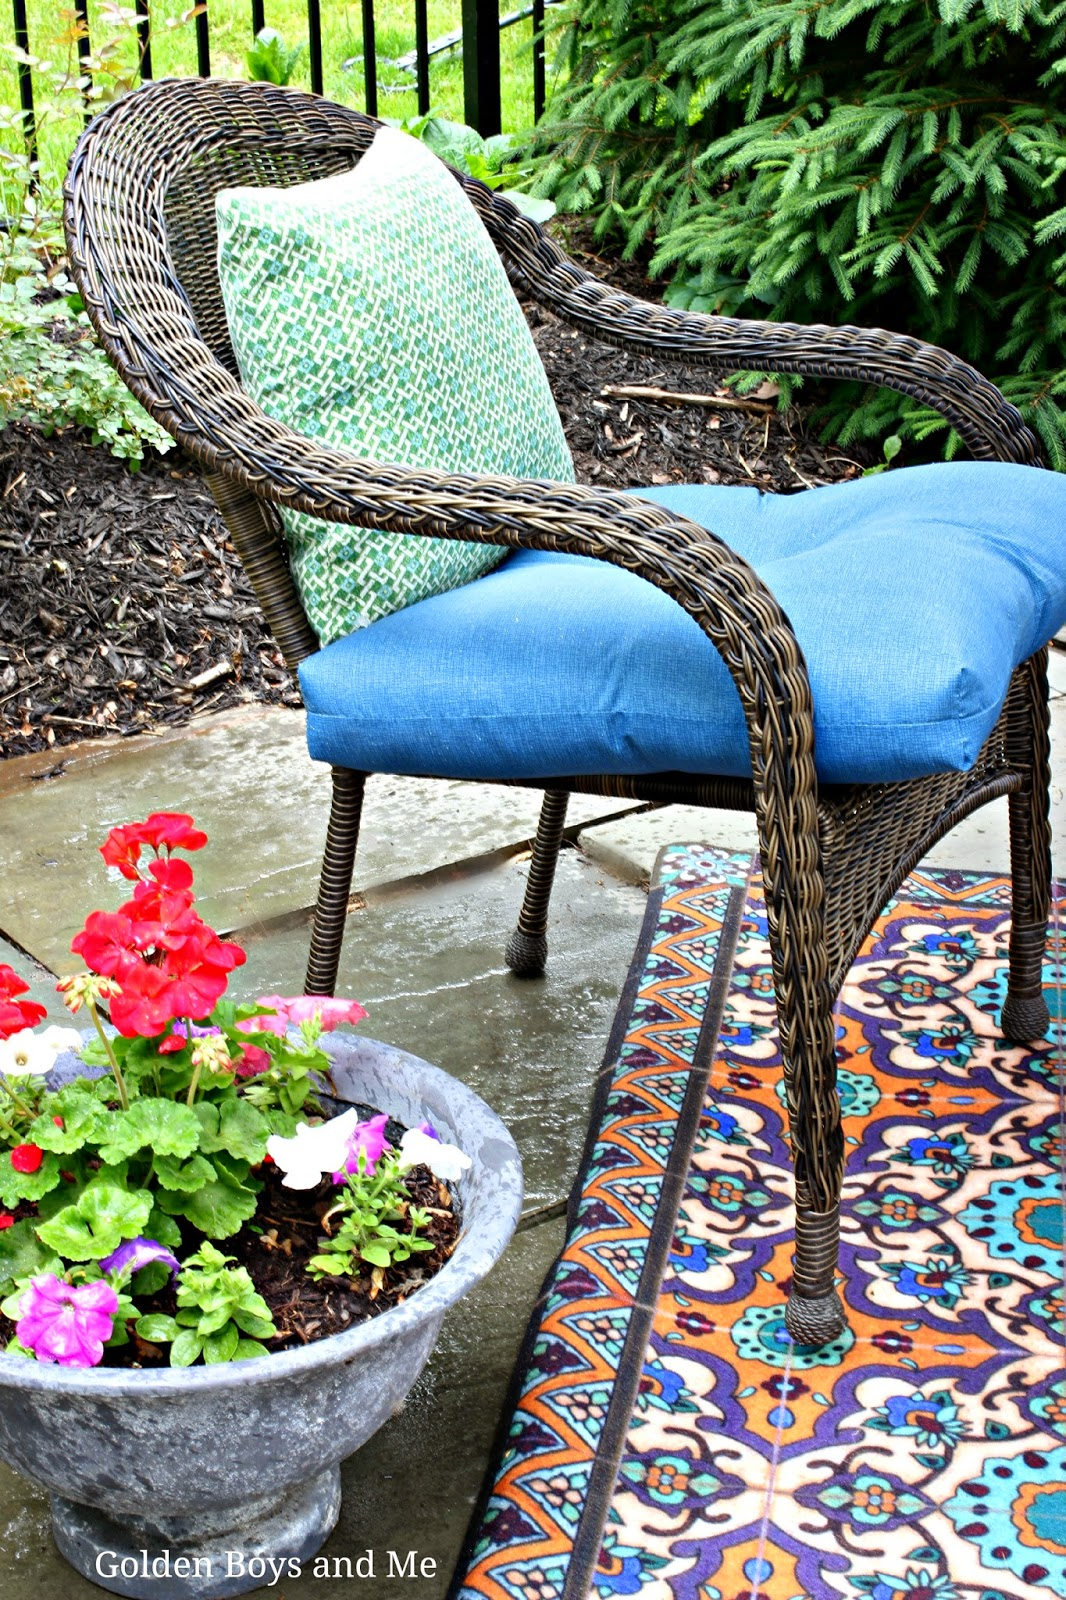 Lowes Garden Treasures Severson wicker furniture-www.goldenboysandme.com